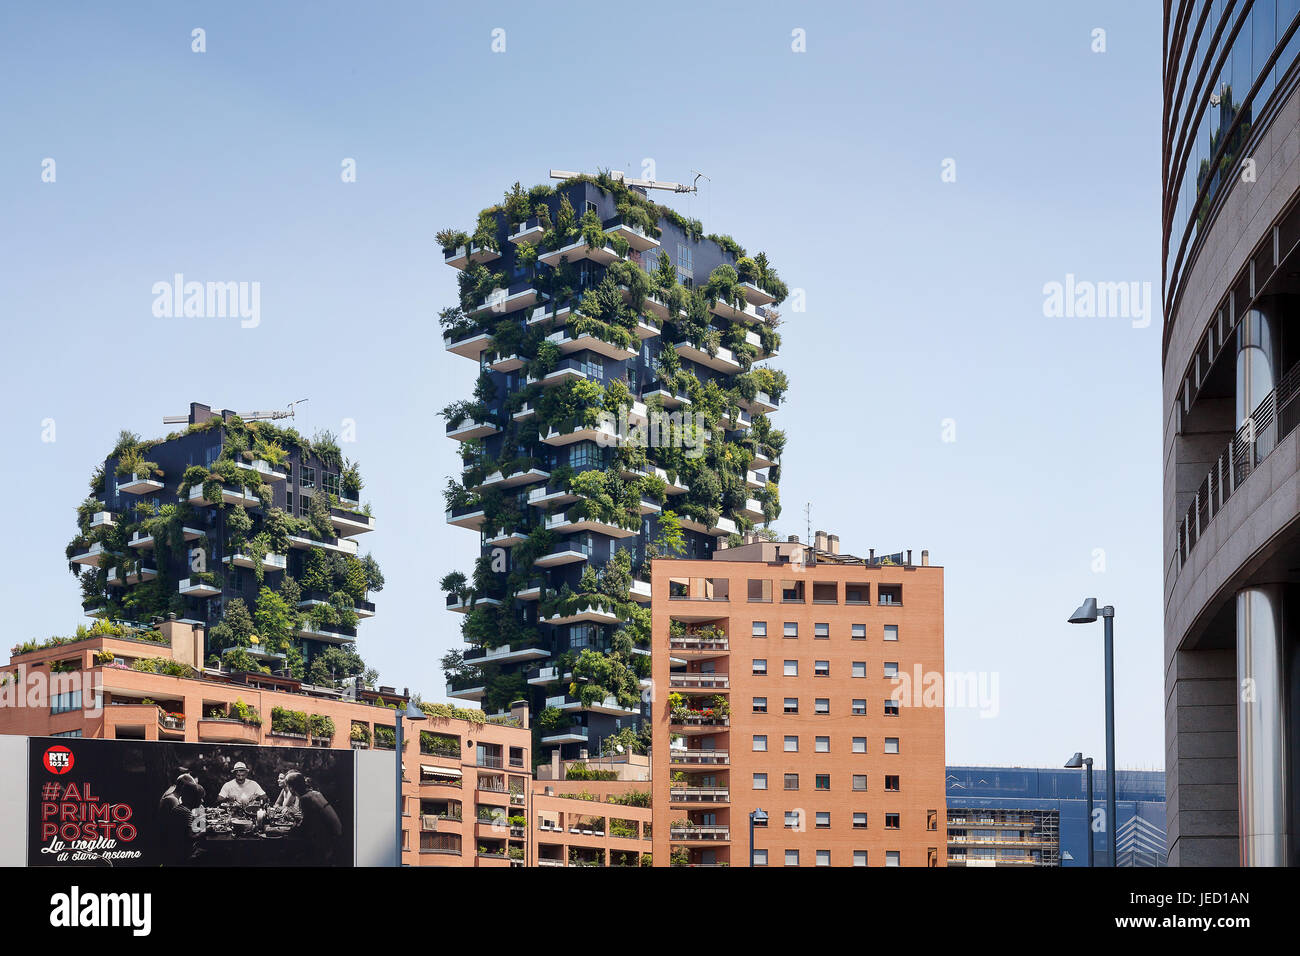 Rome, Italy - June 11, 2017: The famous Vertical Wood seen from Viale Luigi Sturzo. Sustainable residential building - Stock Image